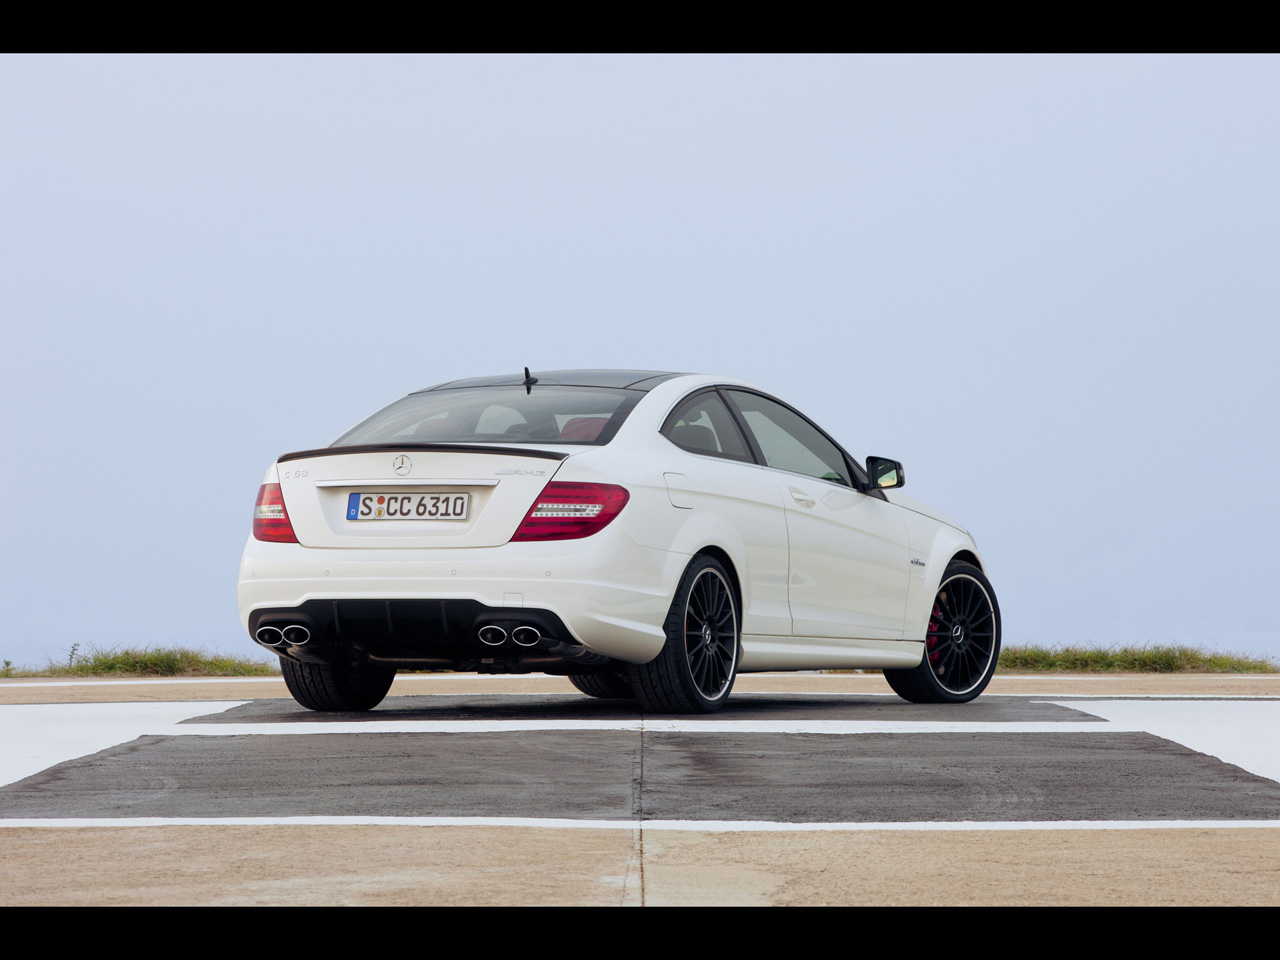 2012 mercedes benz c63 amg coupe pictures page 2 fast for Fastest mercedes benz amg